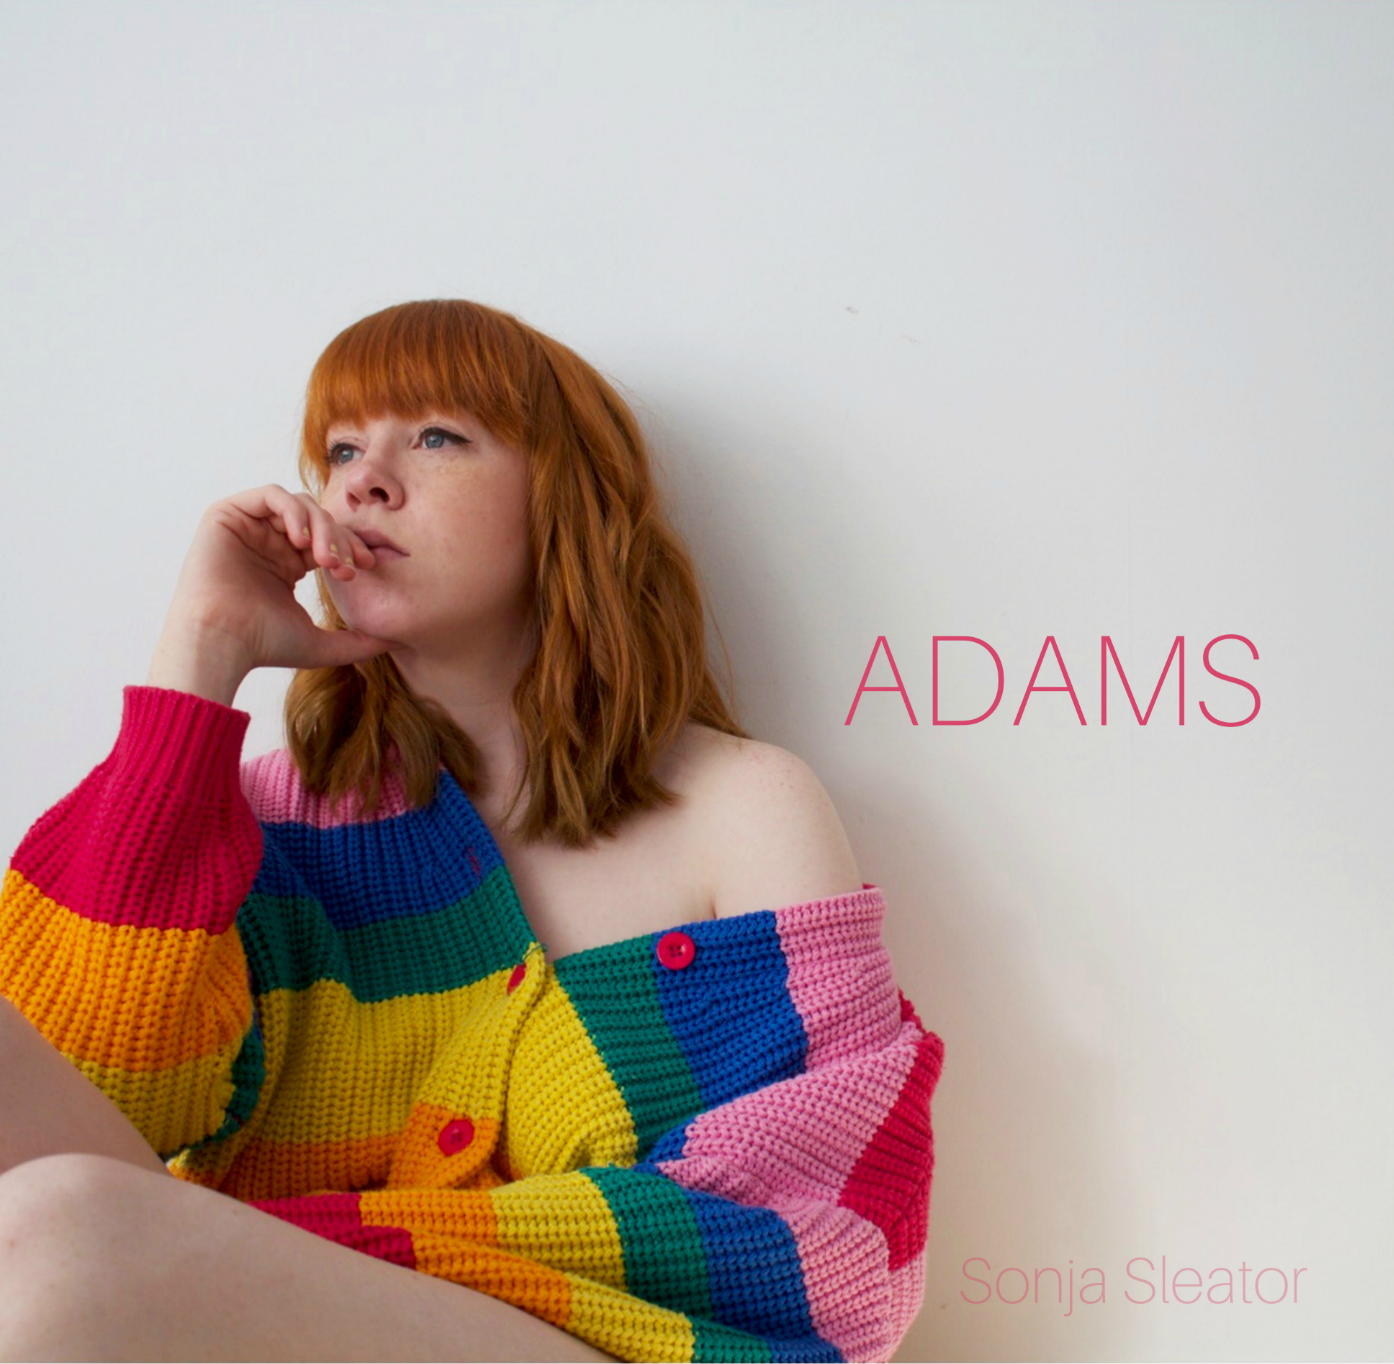 ADAMS - EP COVER.png